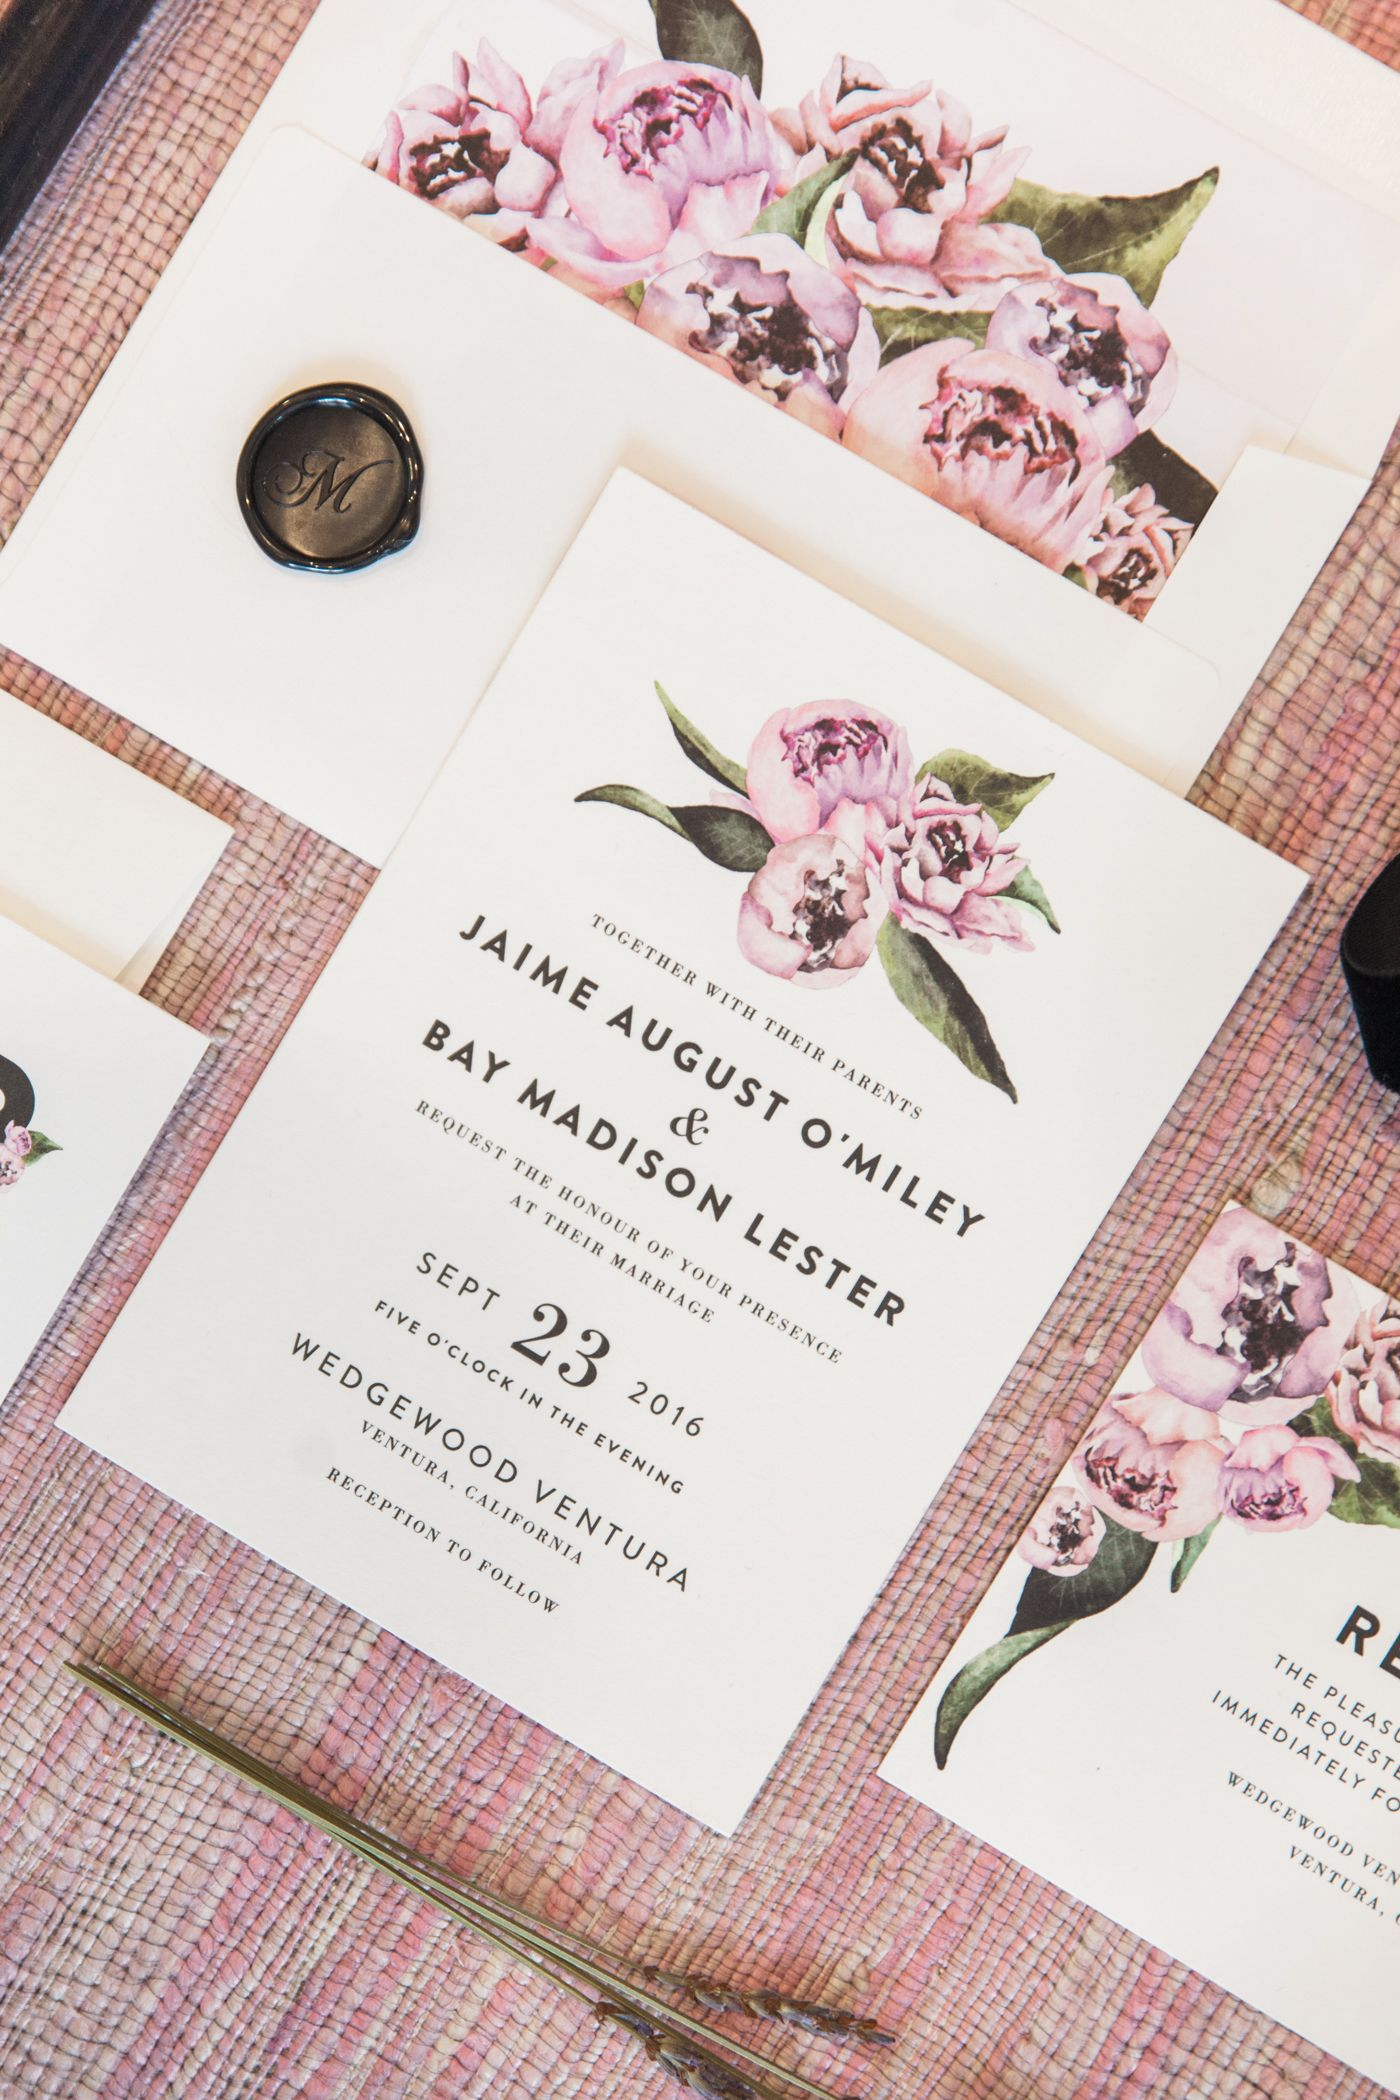 Floral abounds with peony themed wedding invitation by minted artist